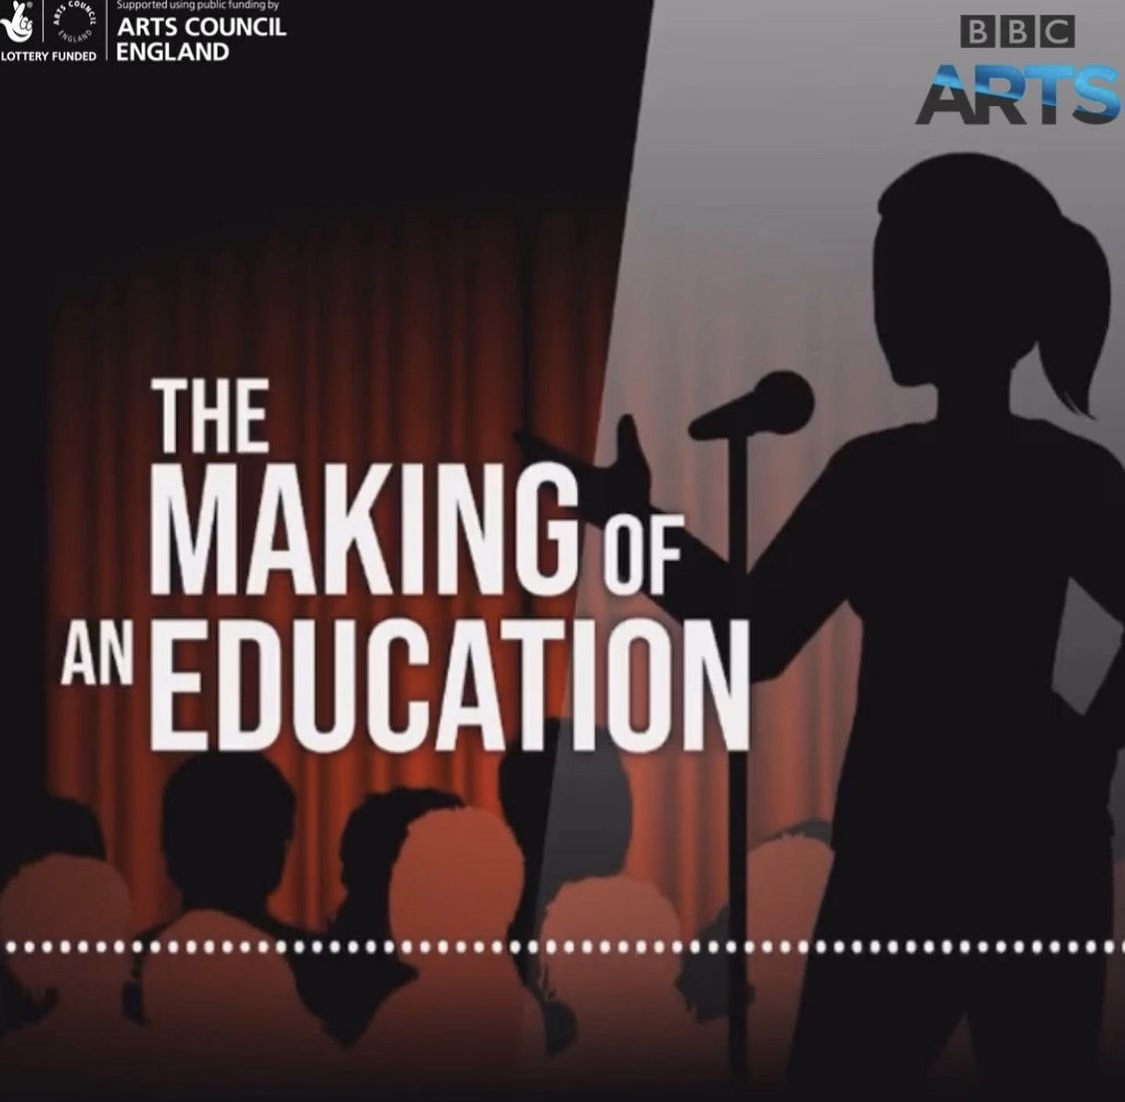 This is a promotional image of Izzy Radford's Making Of An Education. This image shows a stage with a cartoon girl speaking into a microphone.